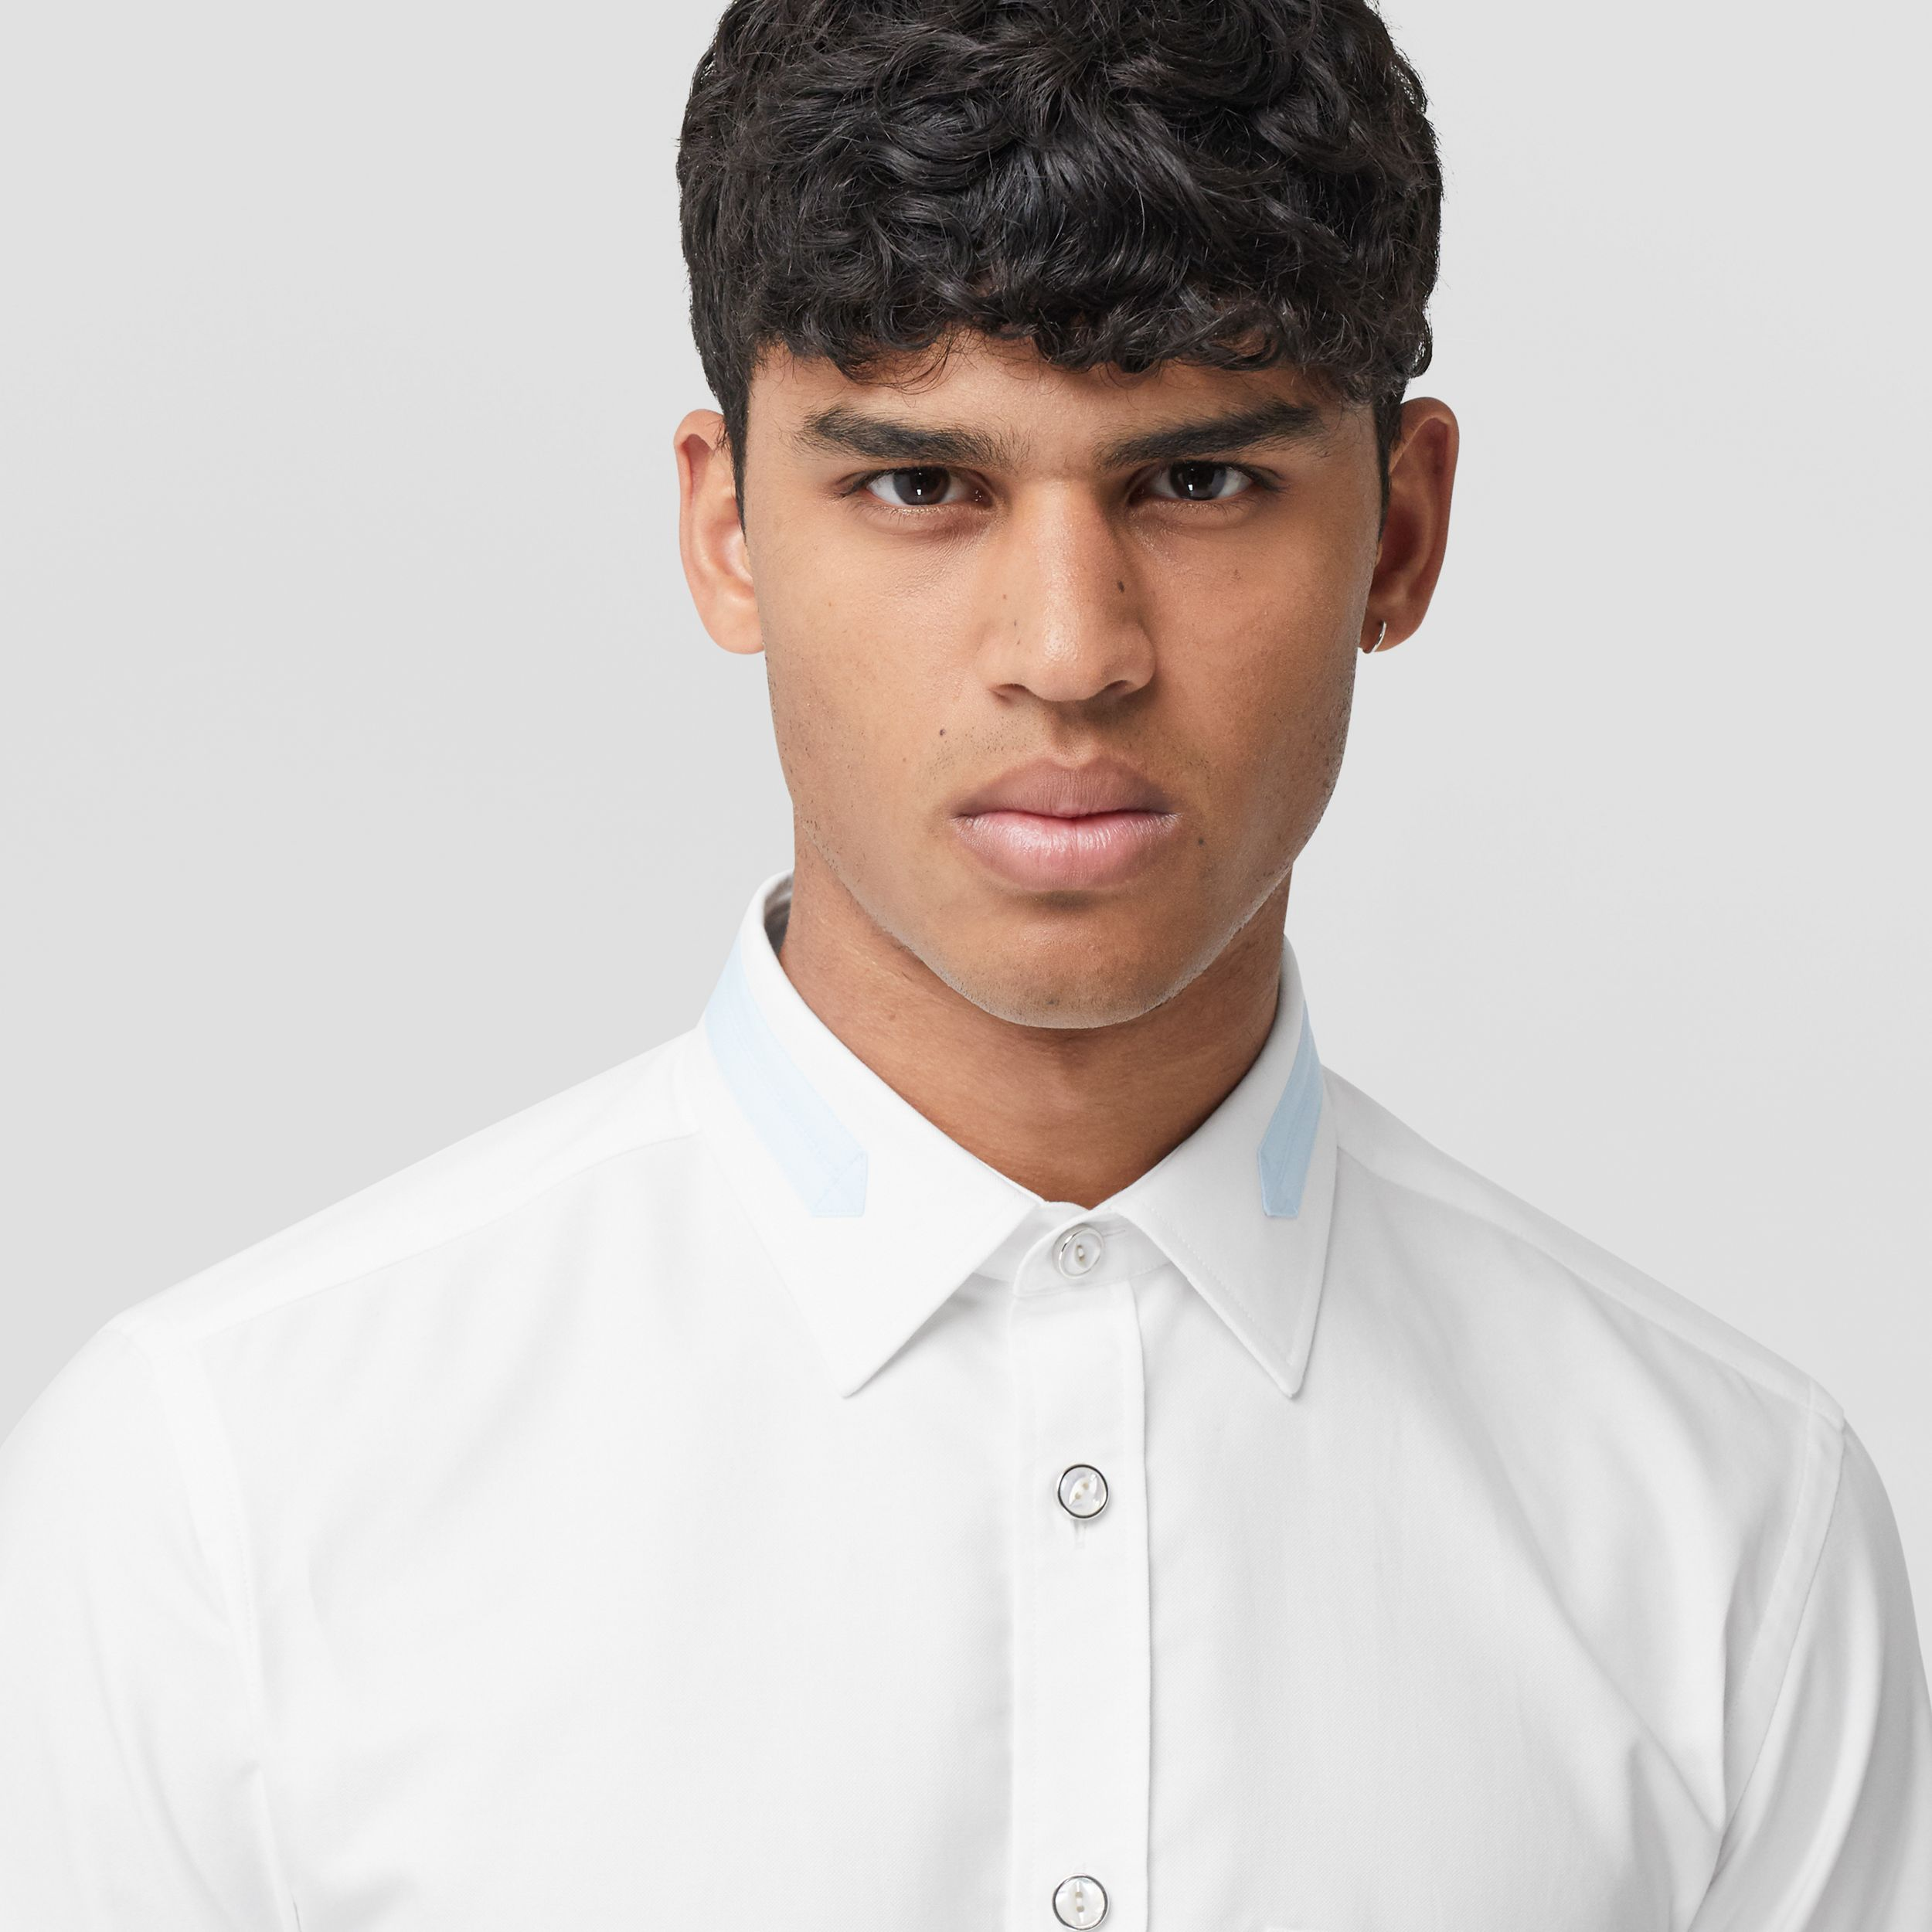 Slim Fit Cotton Oxford Shirt in White - Men | Burberry - 2